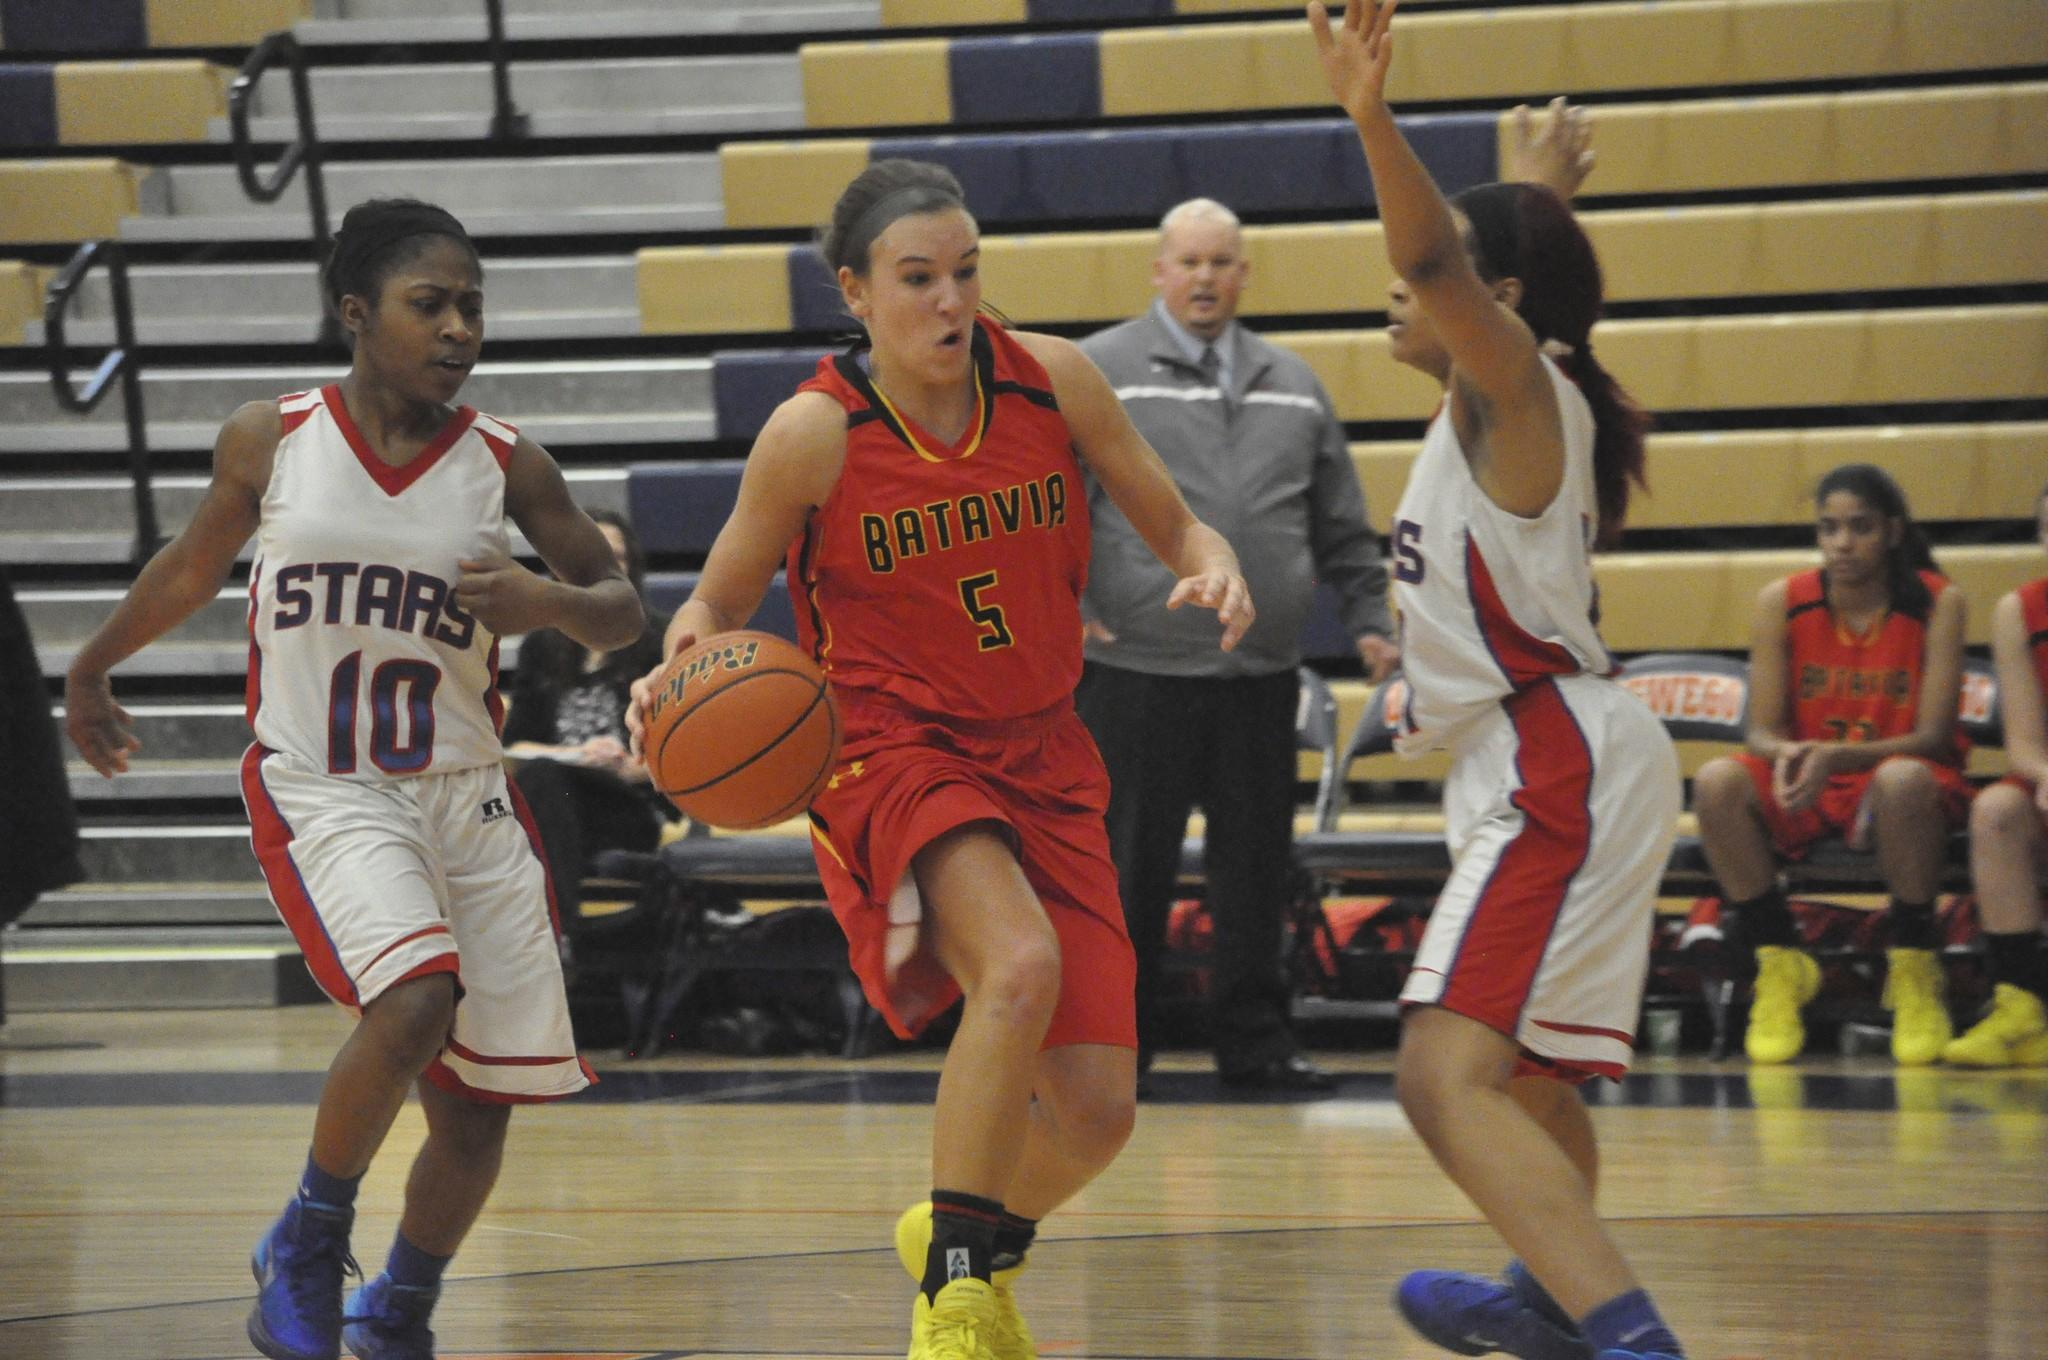 Batavia's Liza Freundt (5) drives between Rich South defenders on Dec. 21. The win gave Batavia third place at Oswego's Hoops for Troops tournament.